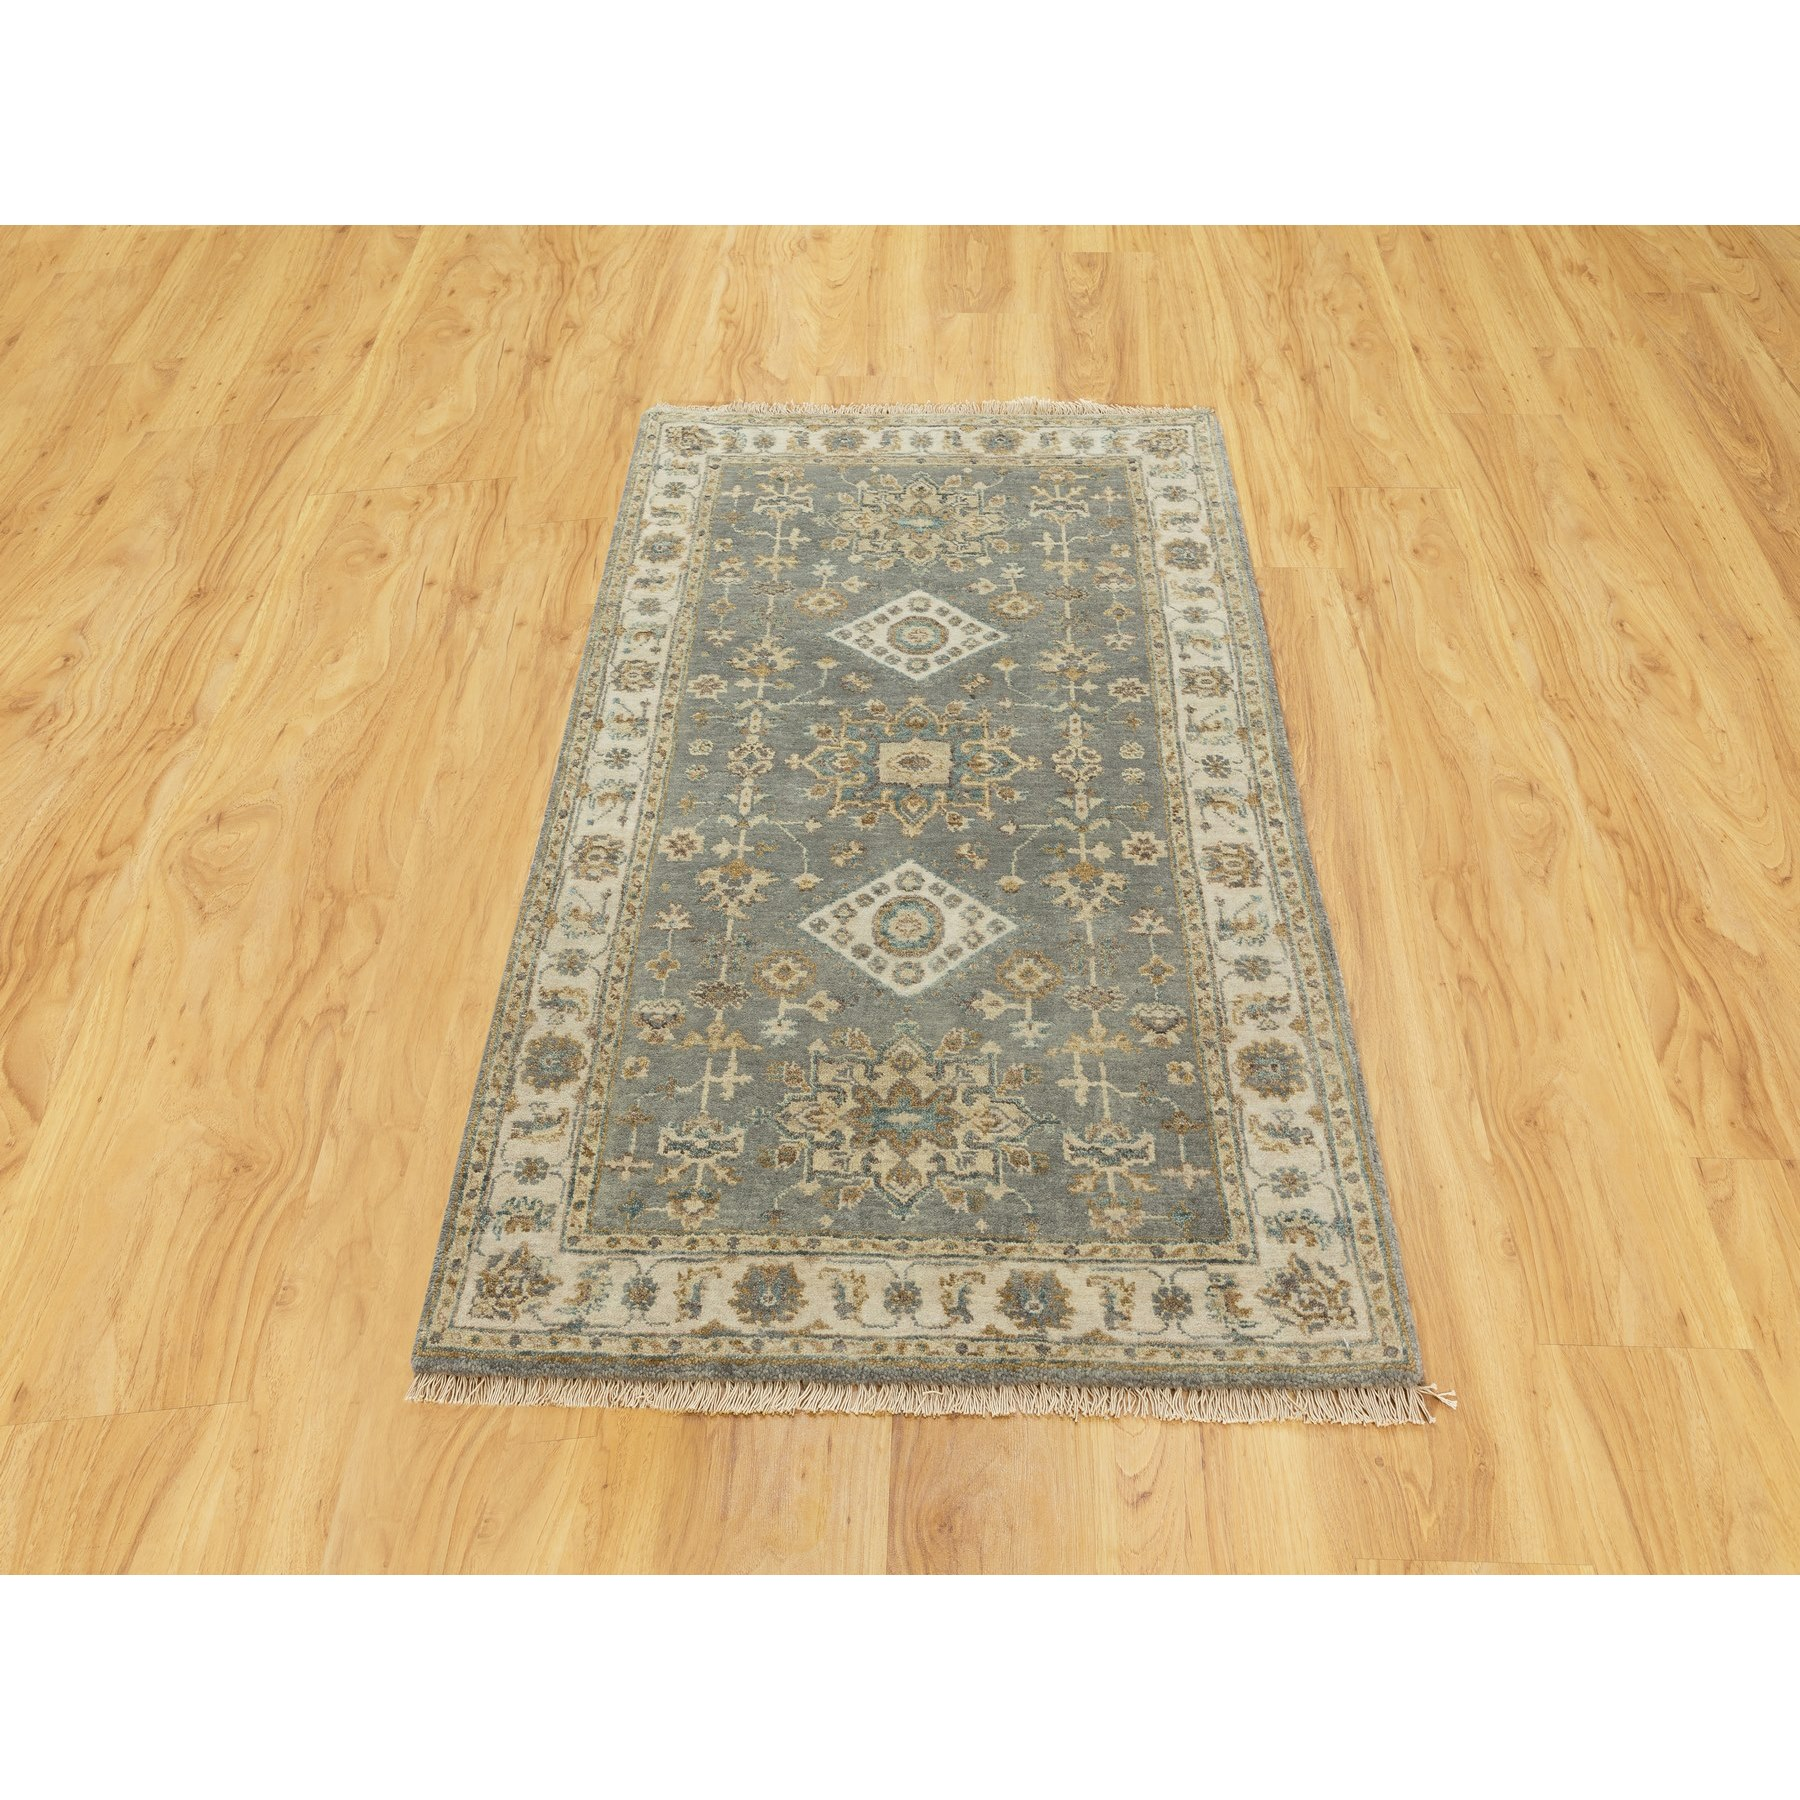 3'x5' Gray Karajeh Design Pure Wool Hand Knotted Oriental Rug